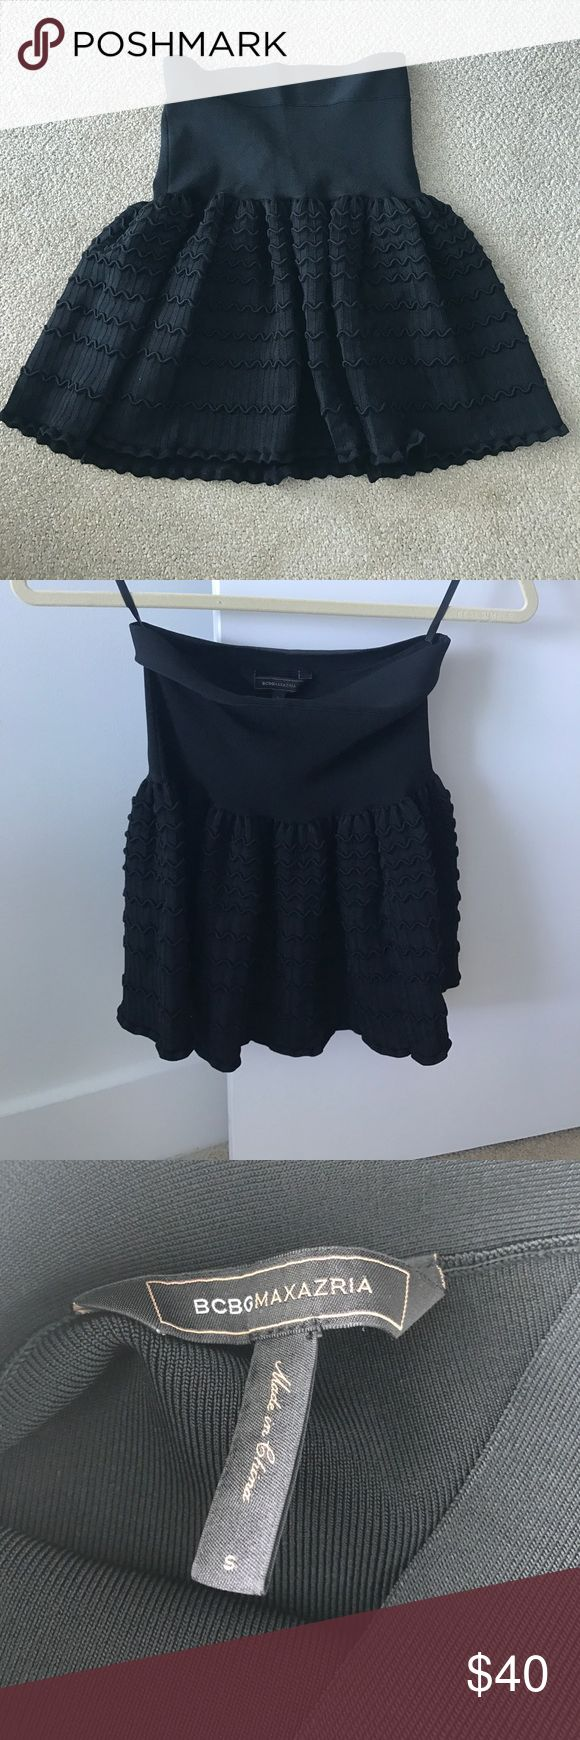 BCBG black skirt BCBG black skirt with peplum style. Fits adorable! Tight fit at the hip/ stomach and flowy on the bottom. Ruffle detail along the bottom. INCREDIBLE condition!! Worn ONCE. BCBG Skirts